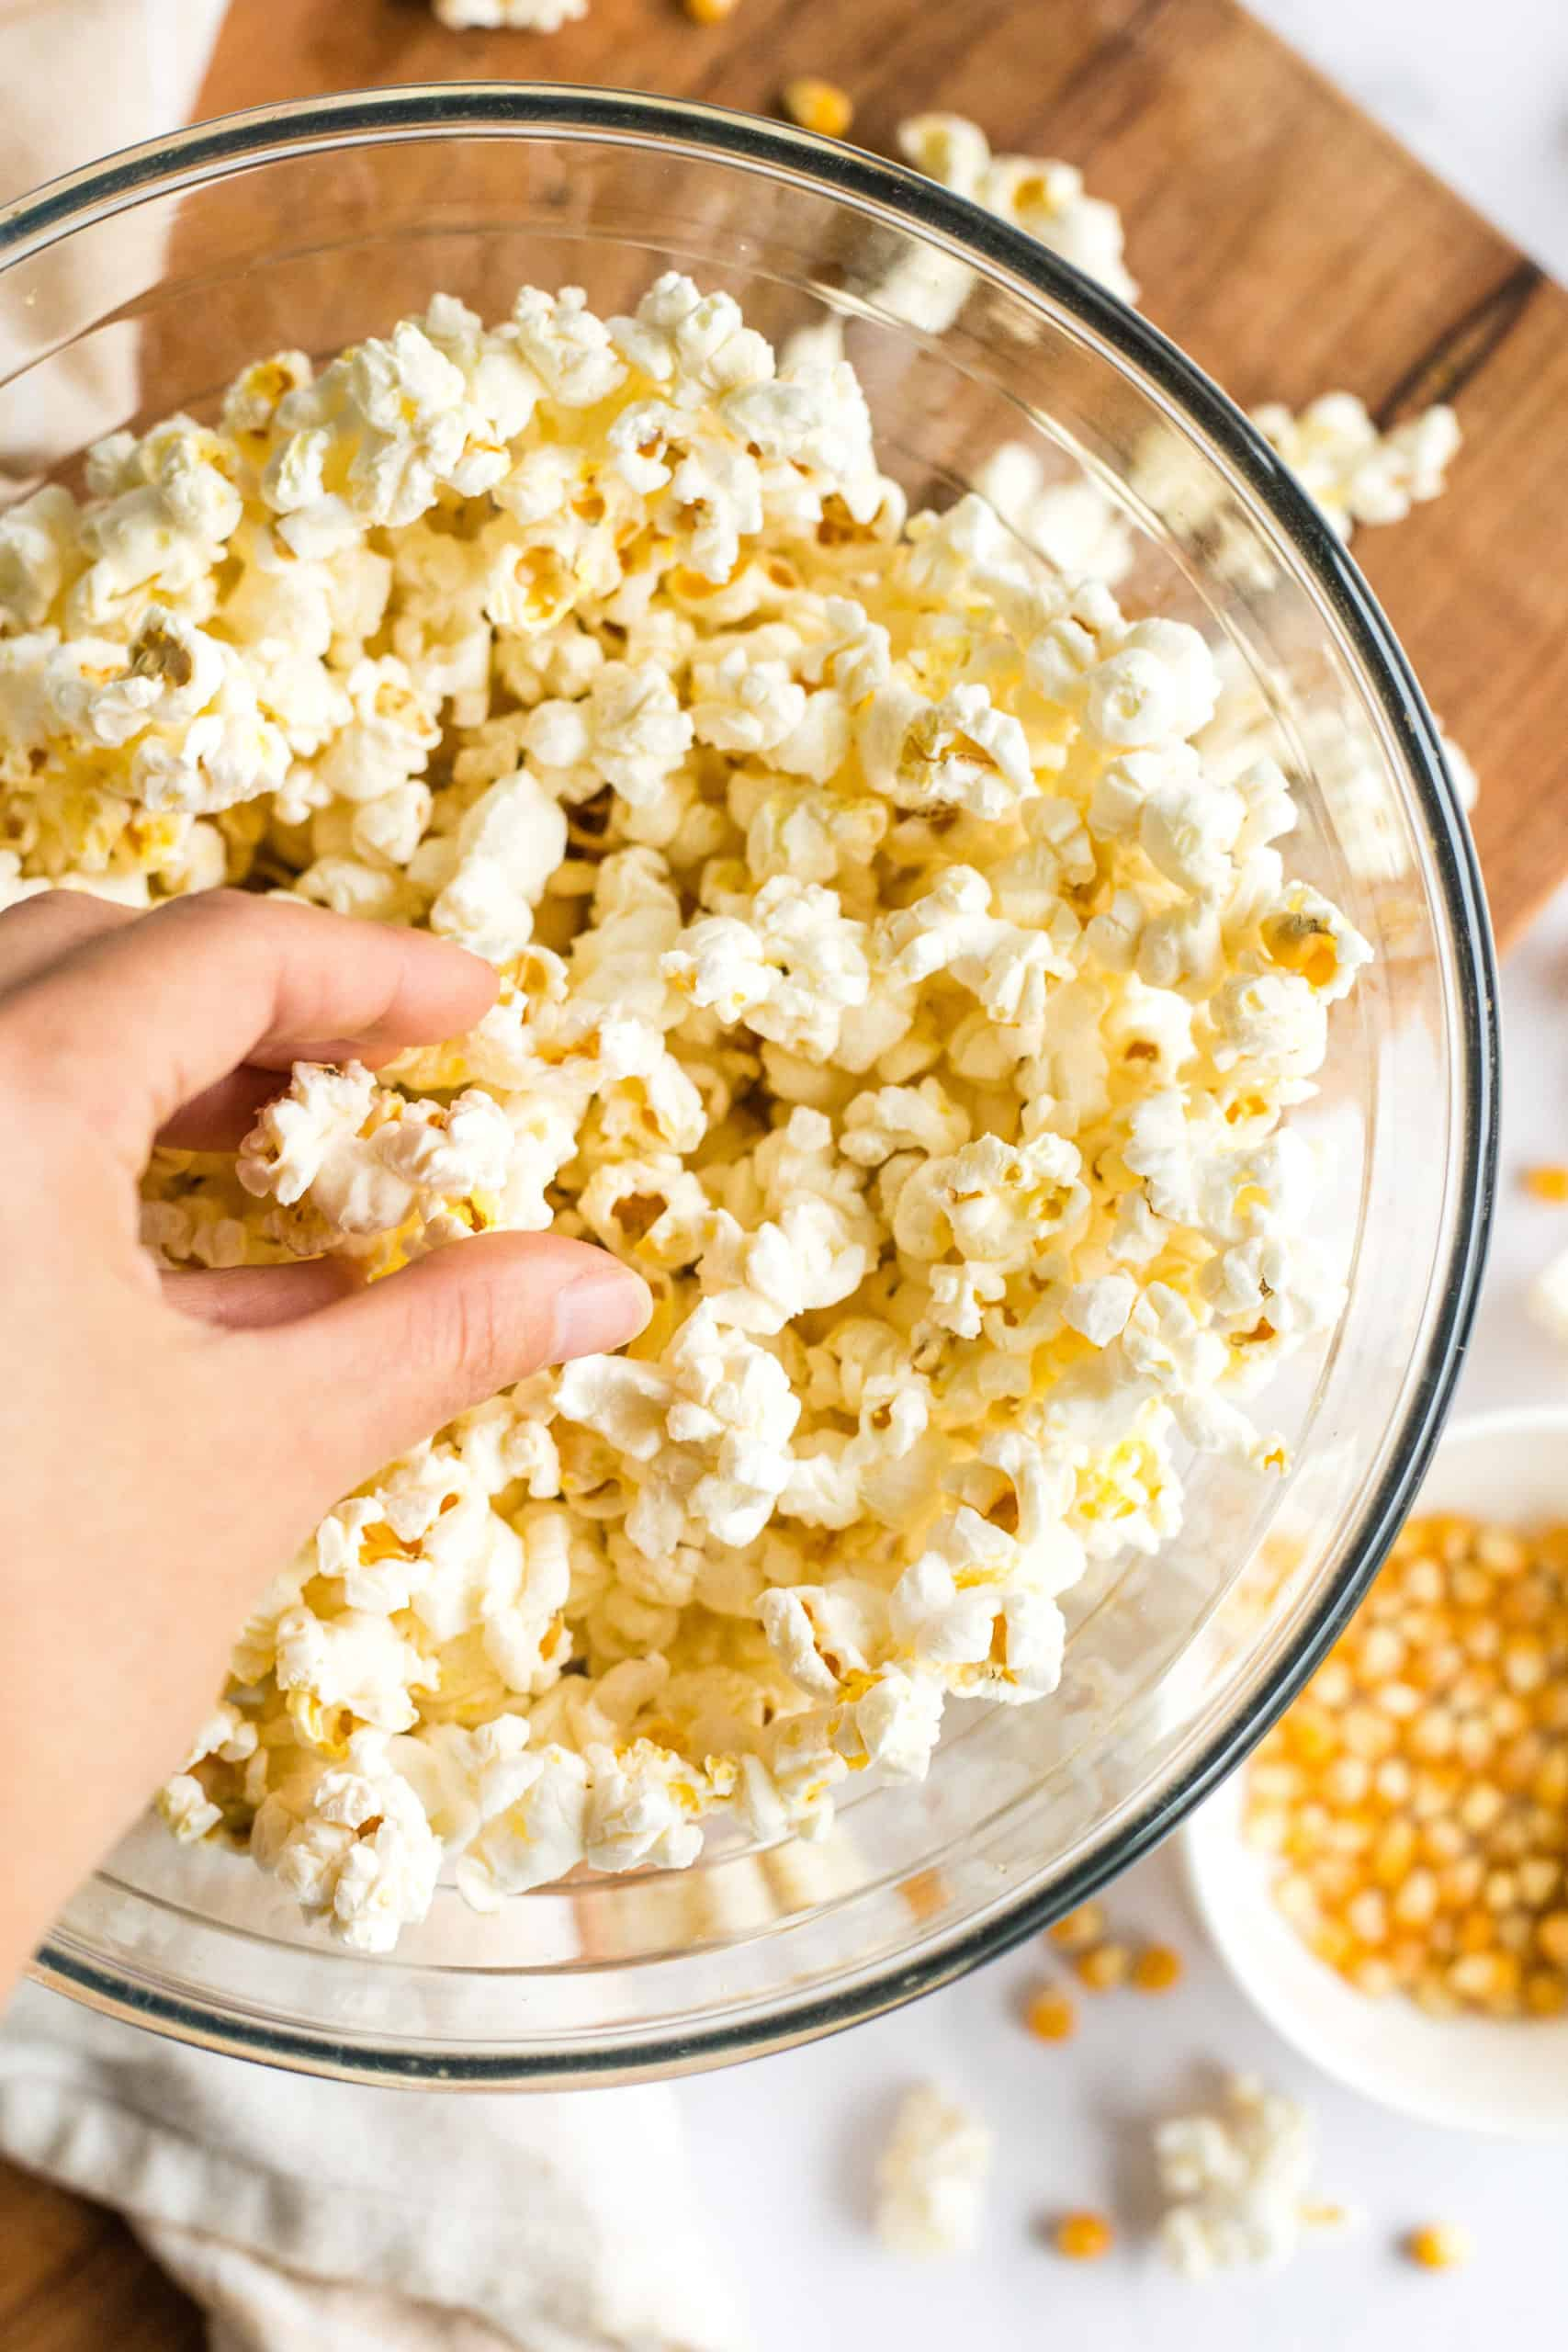 Freshly popped popcorn in a glass bowl.